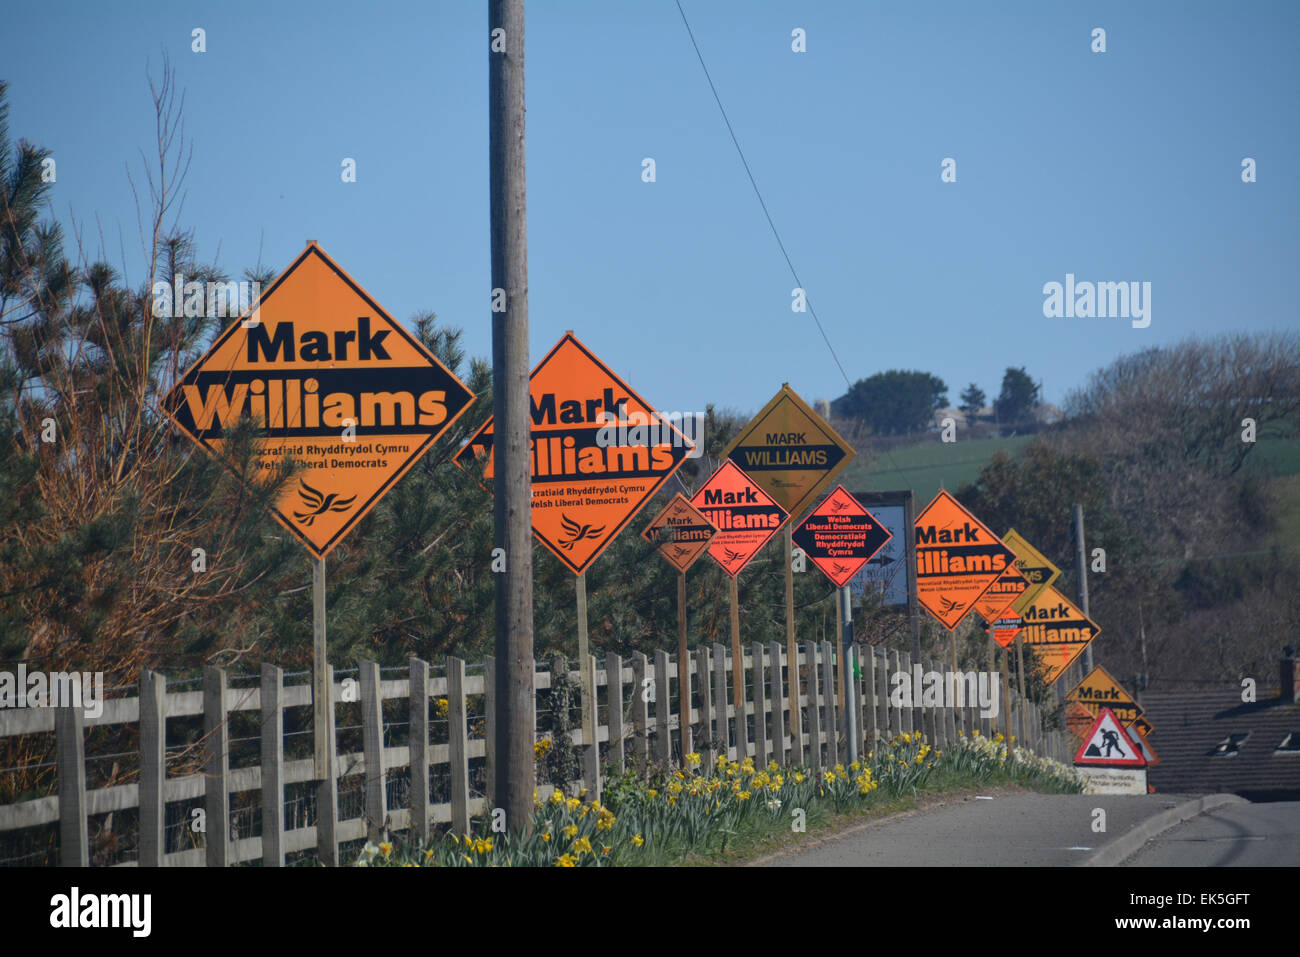 Llanon, Ceredigion, Cardiganshire, UK. 7th April, 2015. 2015 elections poster campaign has it gone to far? 15 in - Stock Image